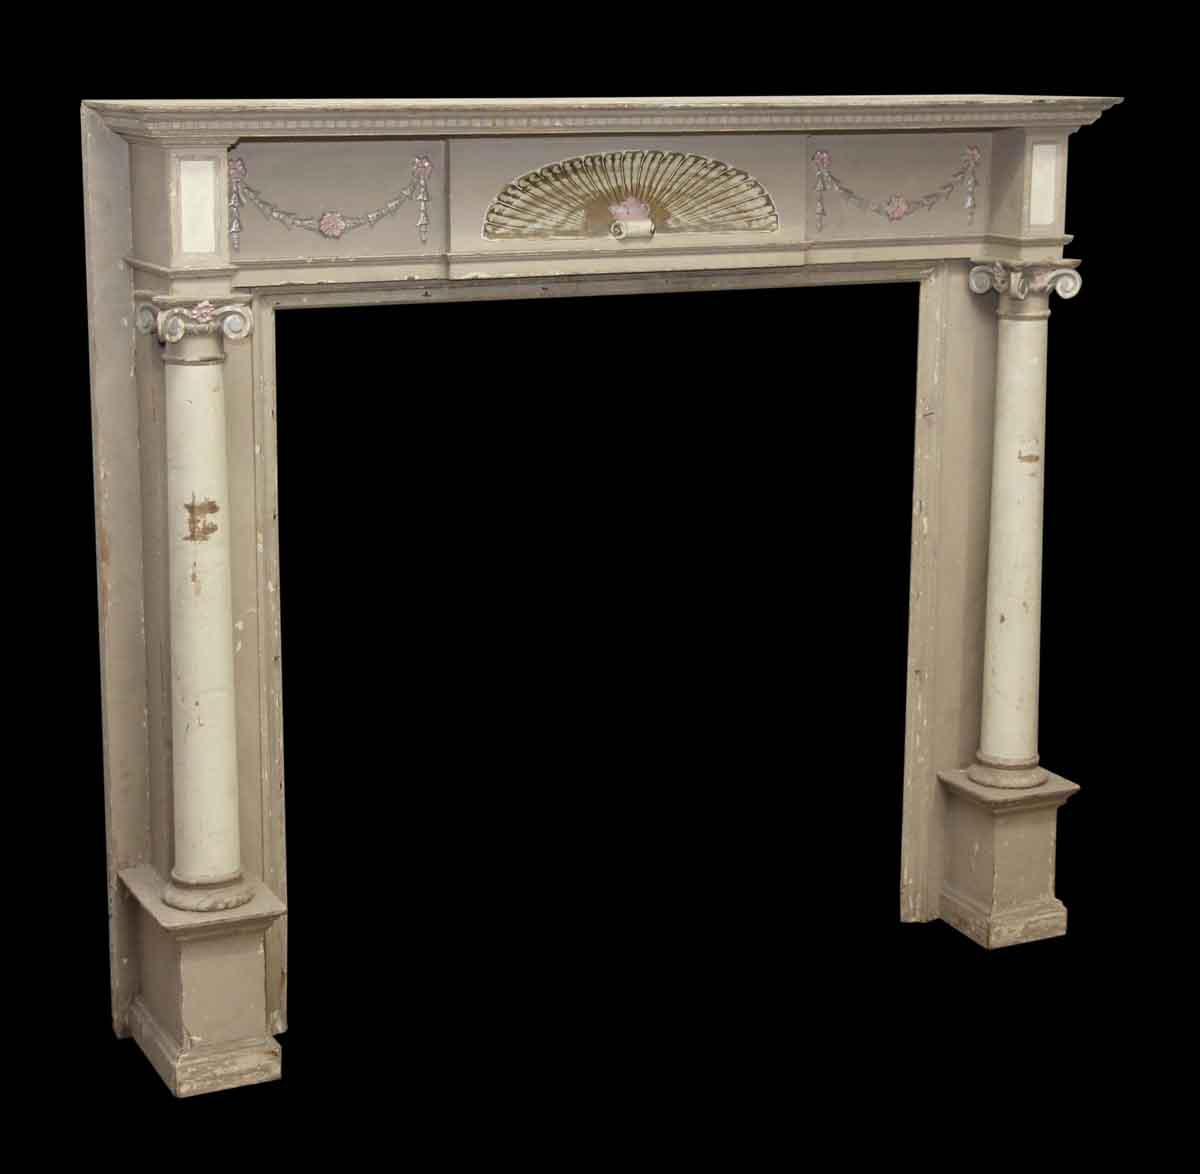 Decorative wooden mantel with fan detail ionic columns for Decorative structural columns